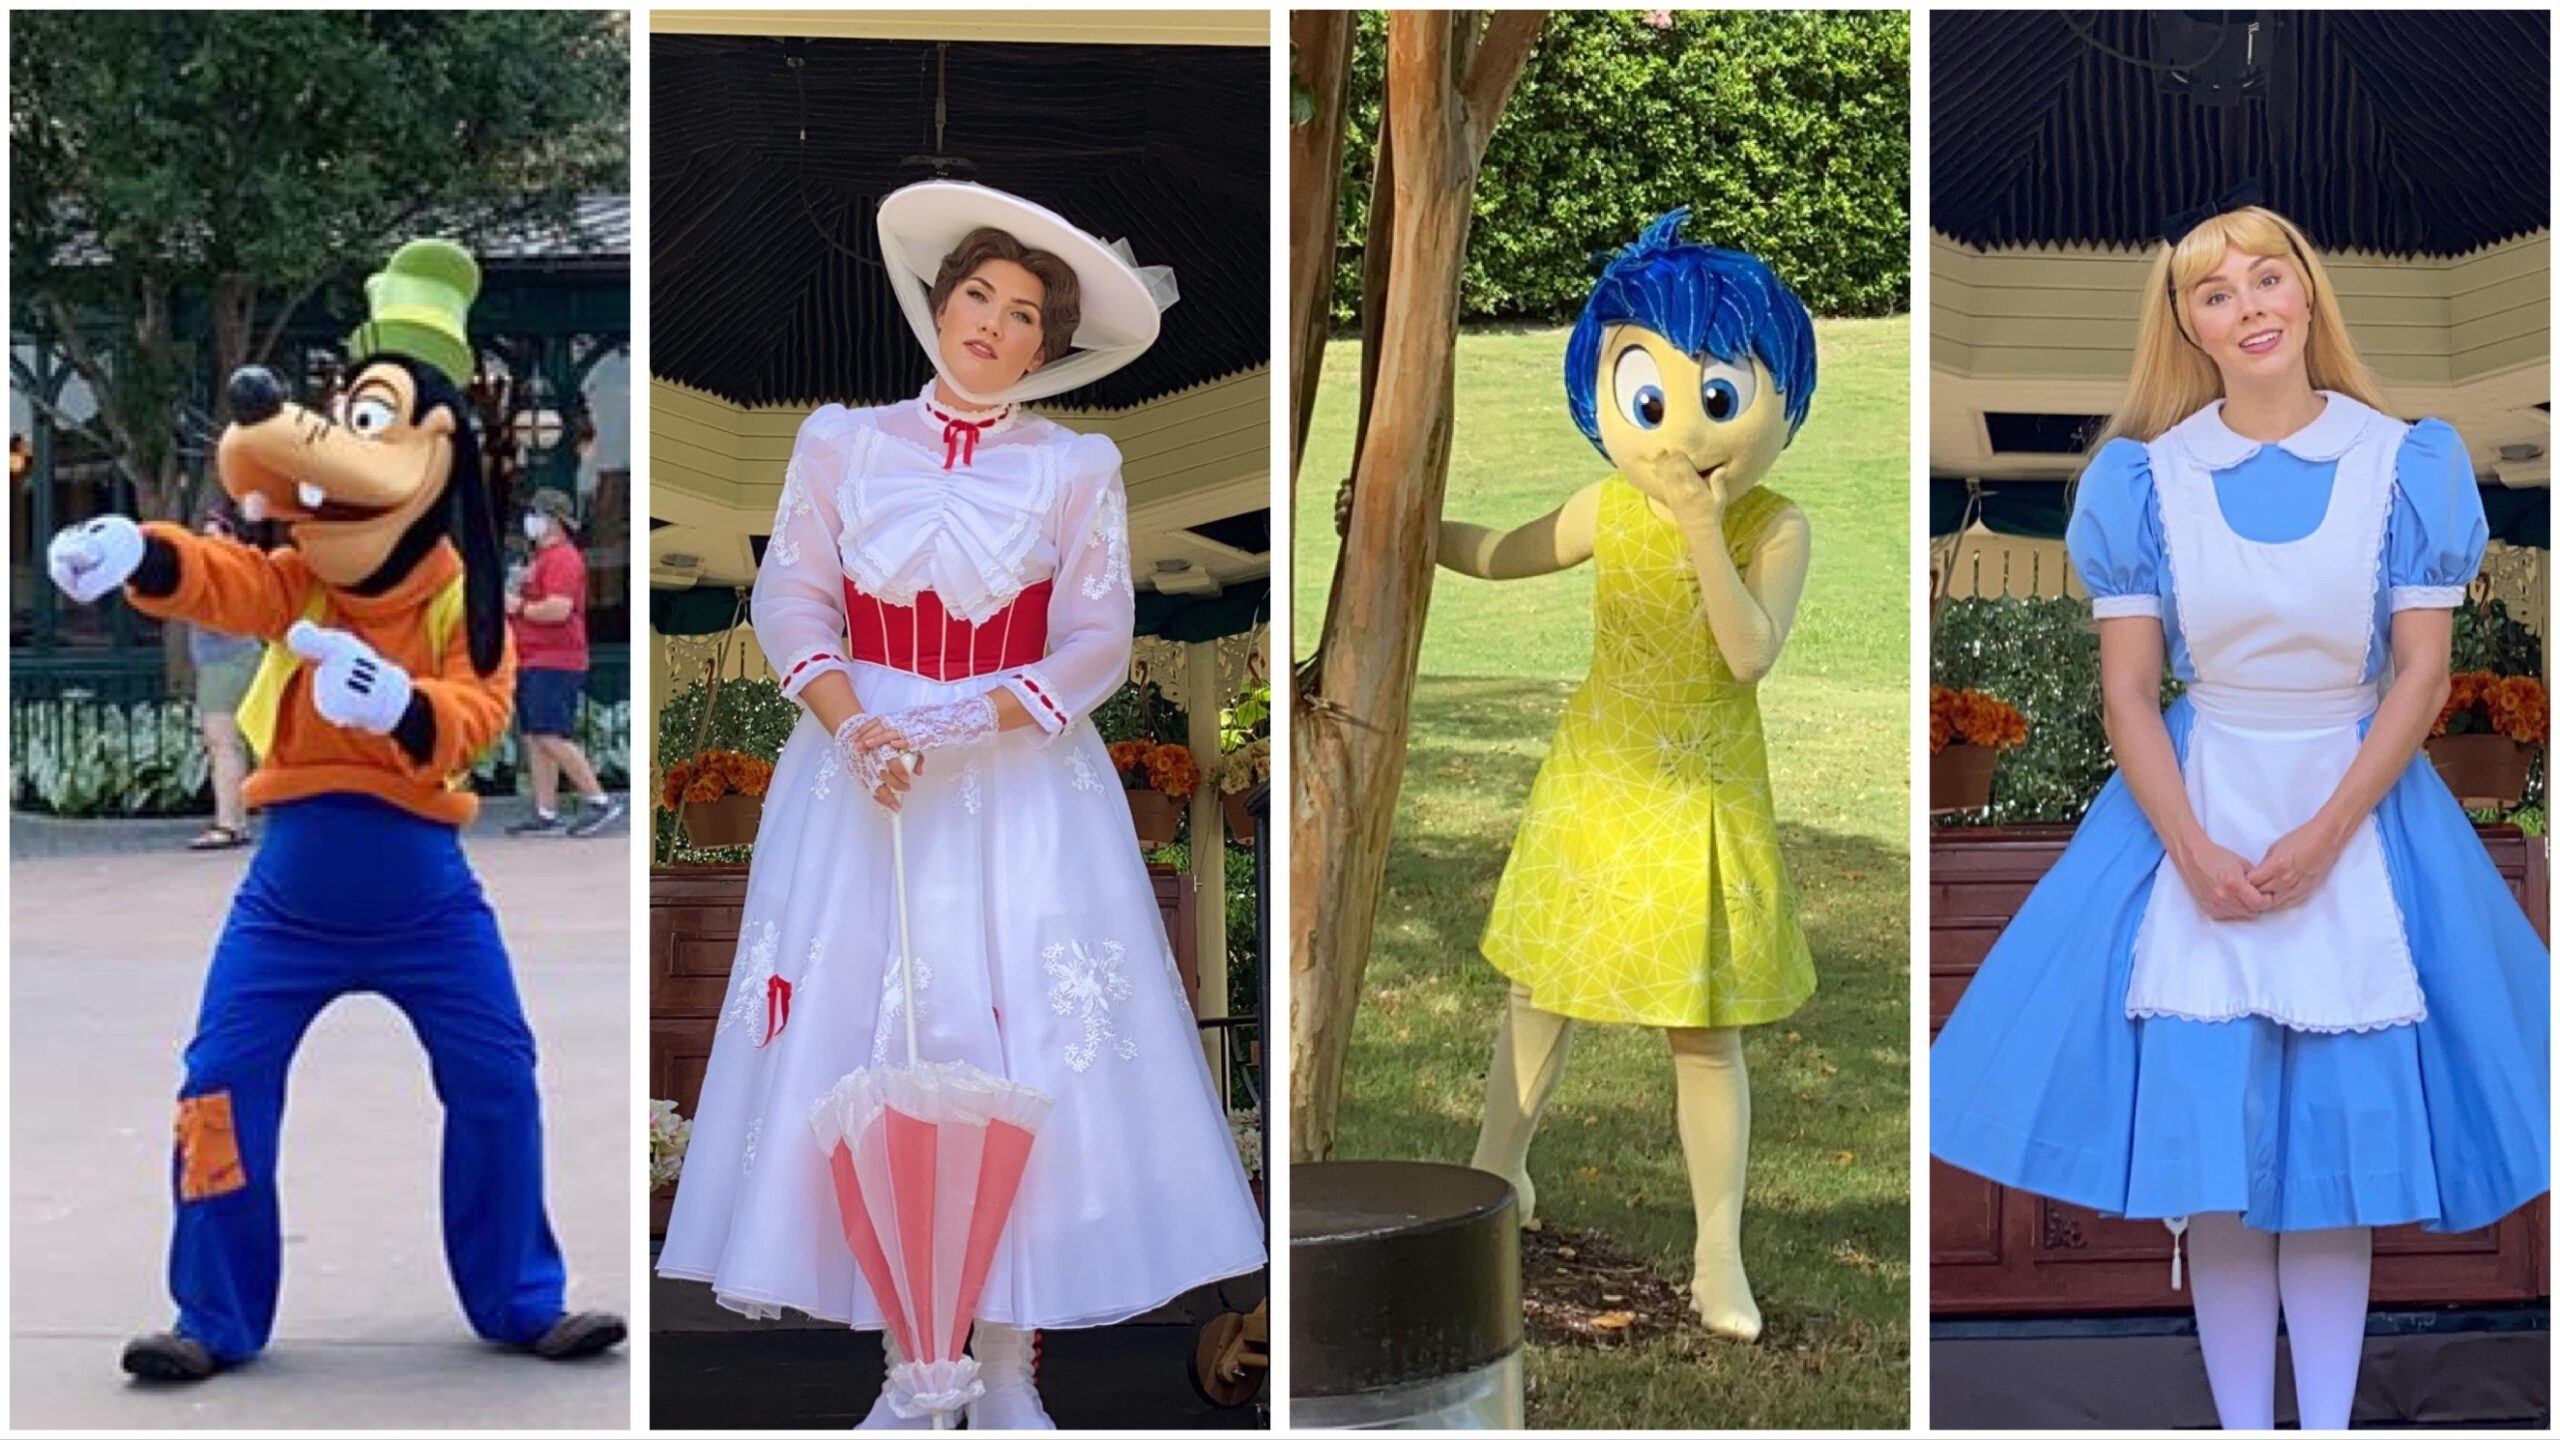 Some Of The New Character Experiences At Epcot!